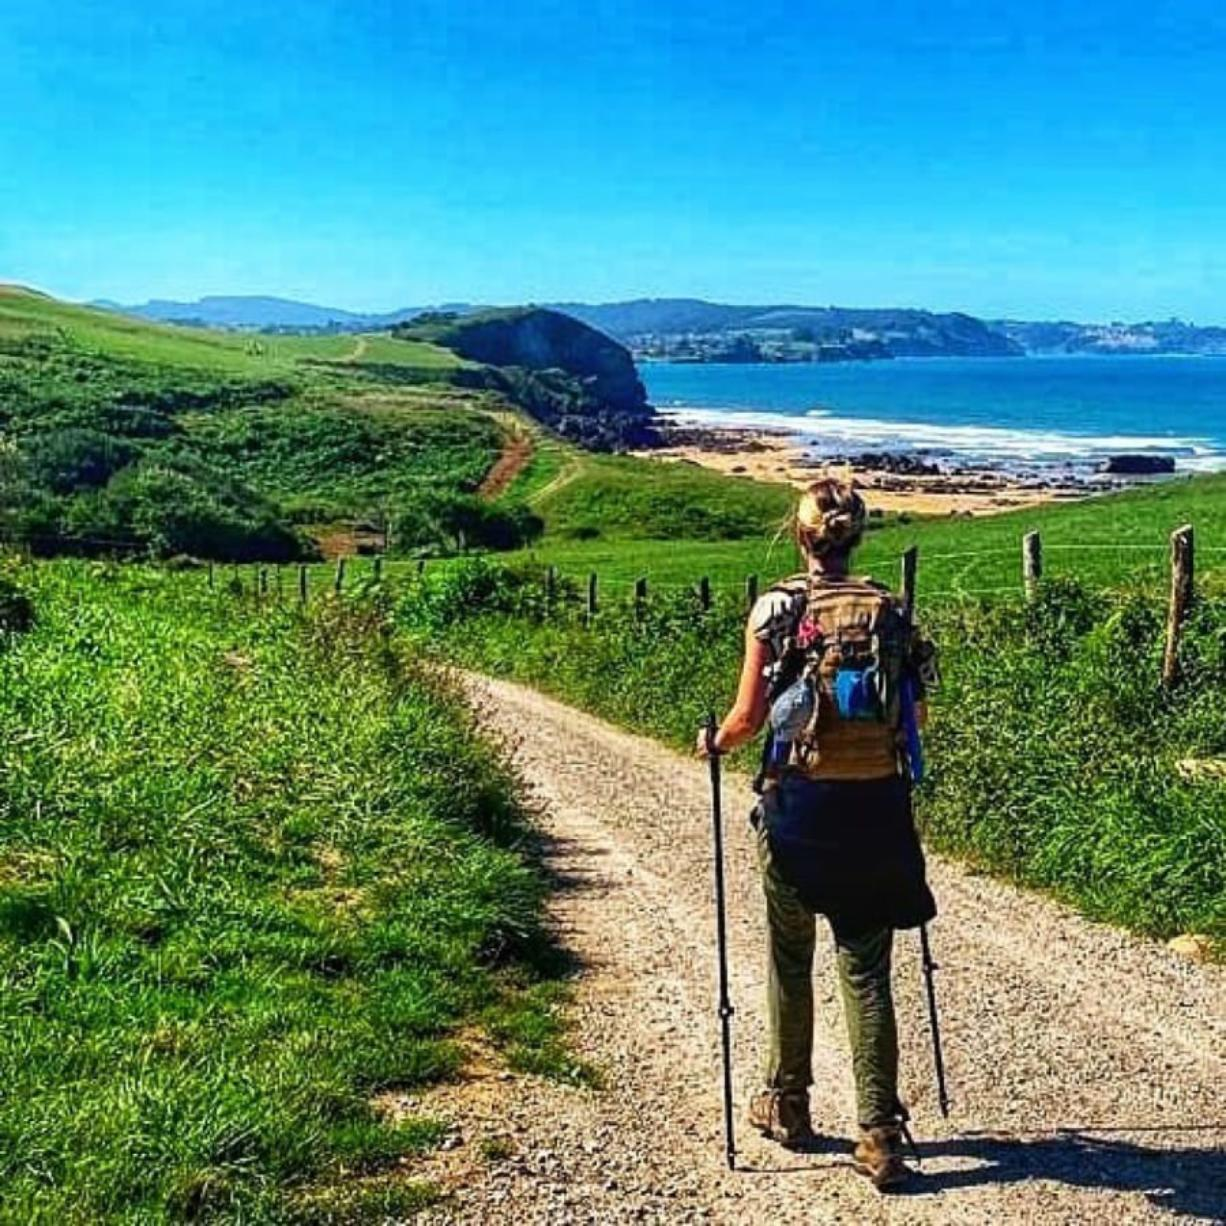 Courtesy Jennife Nilsson   After her fiancEe died, Jennifer Nilsson went on a 500-mile pilgrimage in Spain. The journey not only helped her heal, it prompted her to move from Chicago back to her hometown - Vancouver.